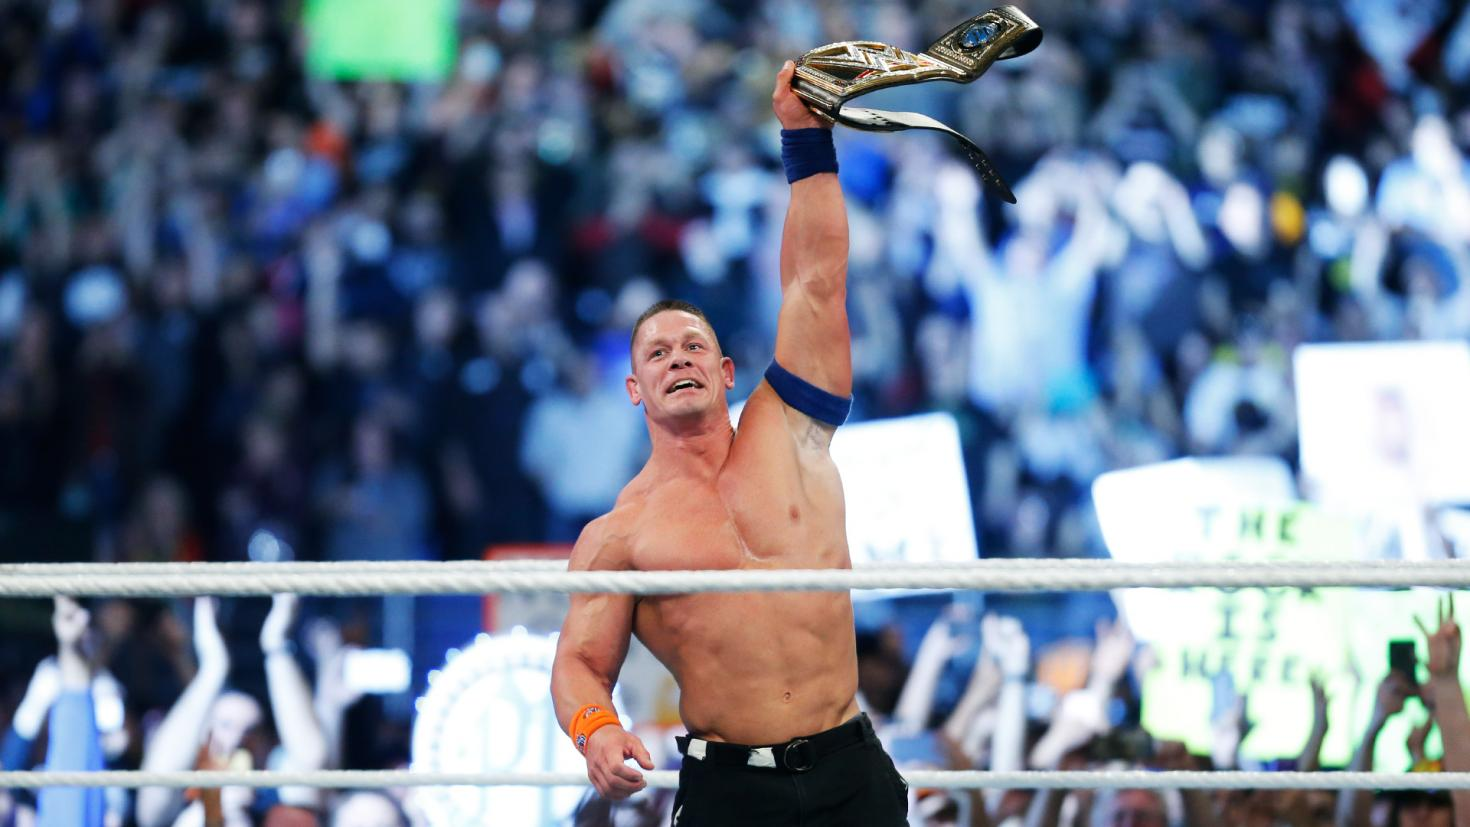 John Cena is the new WWE Champion (Picture: WWE)